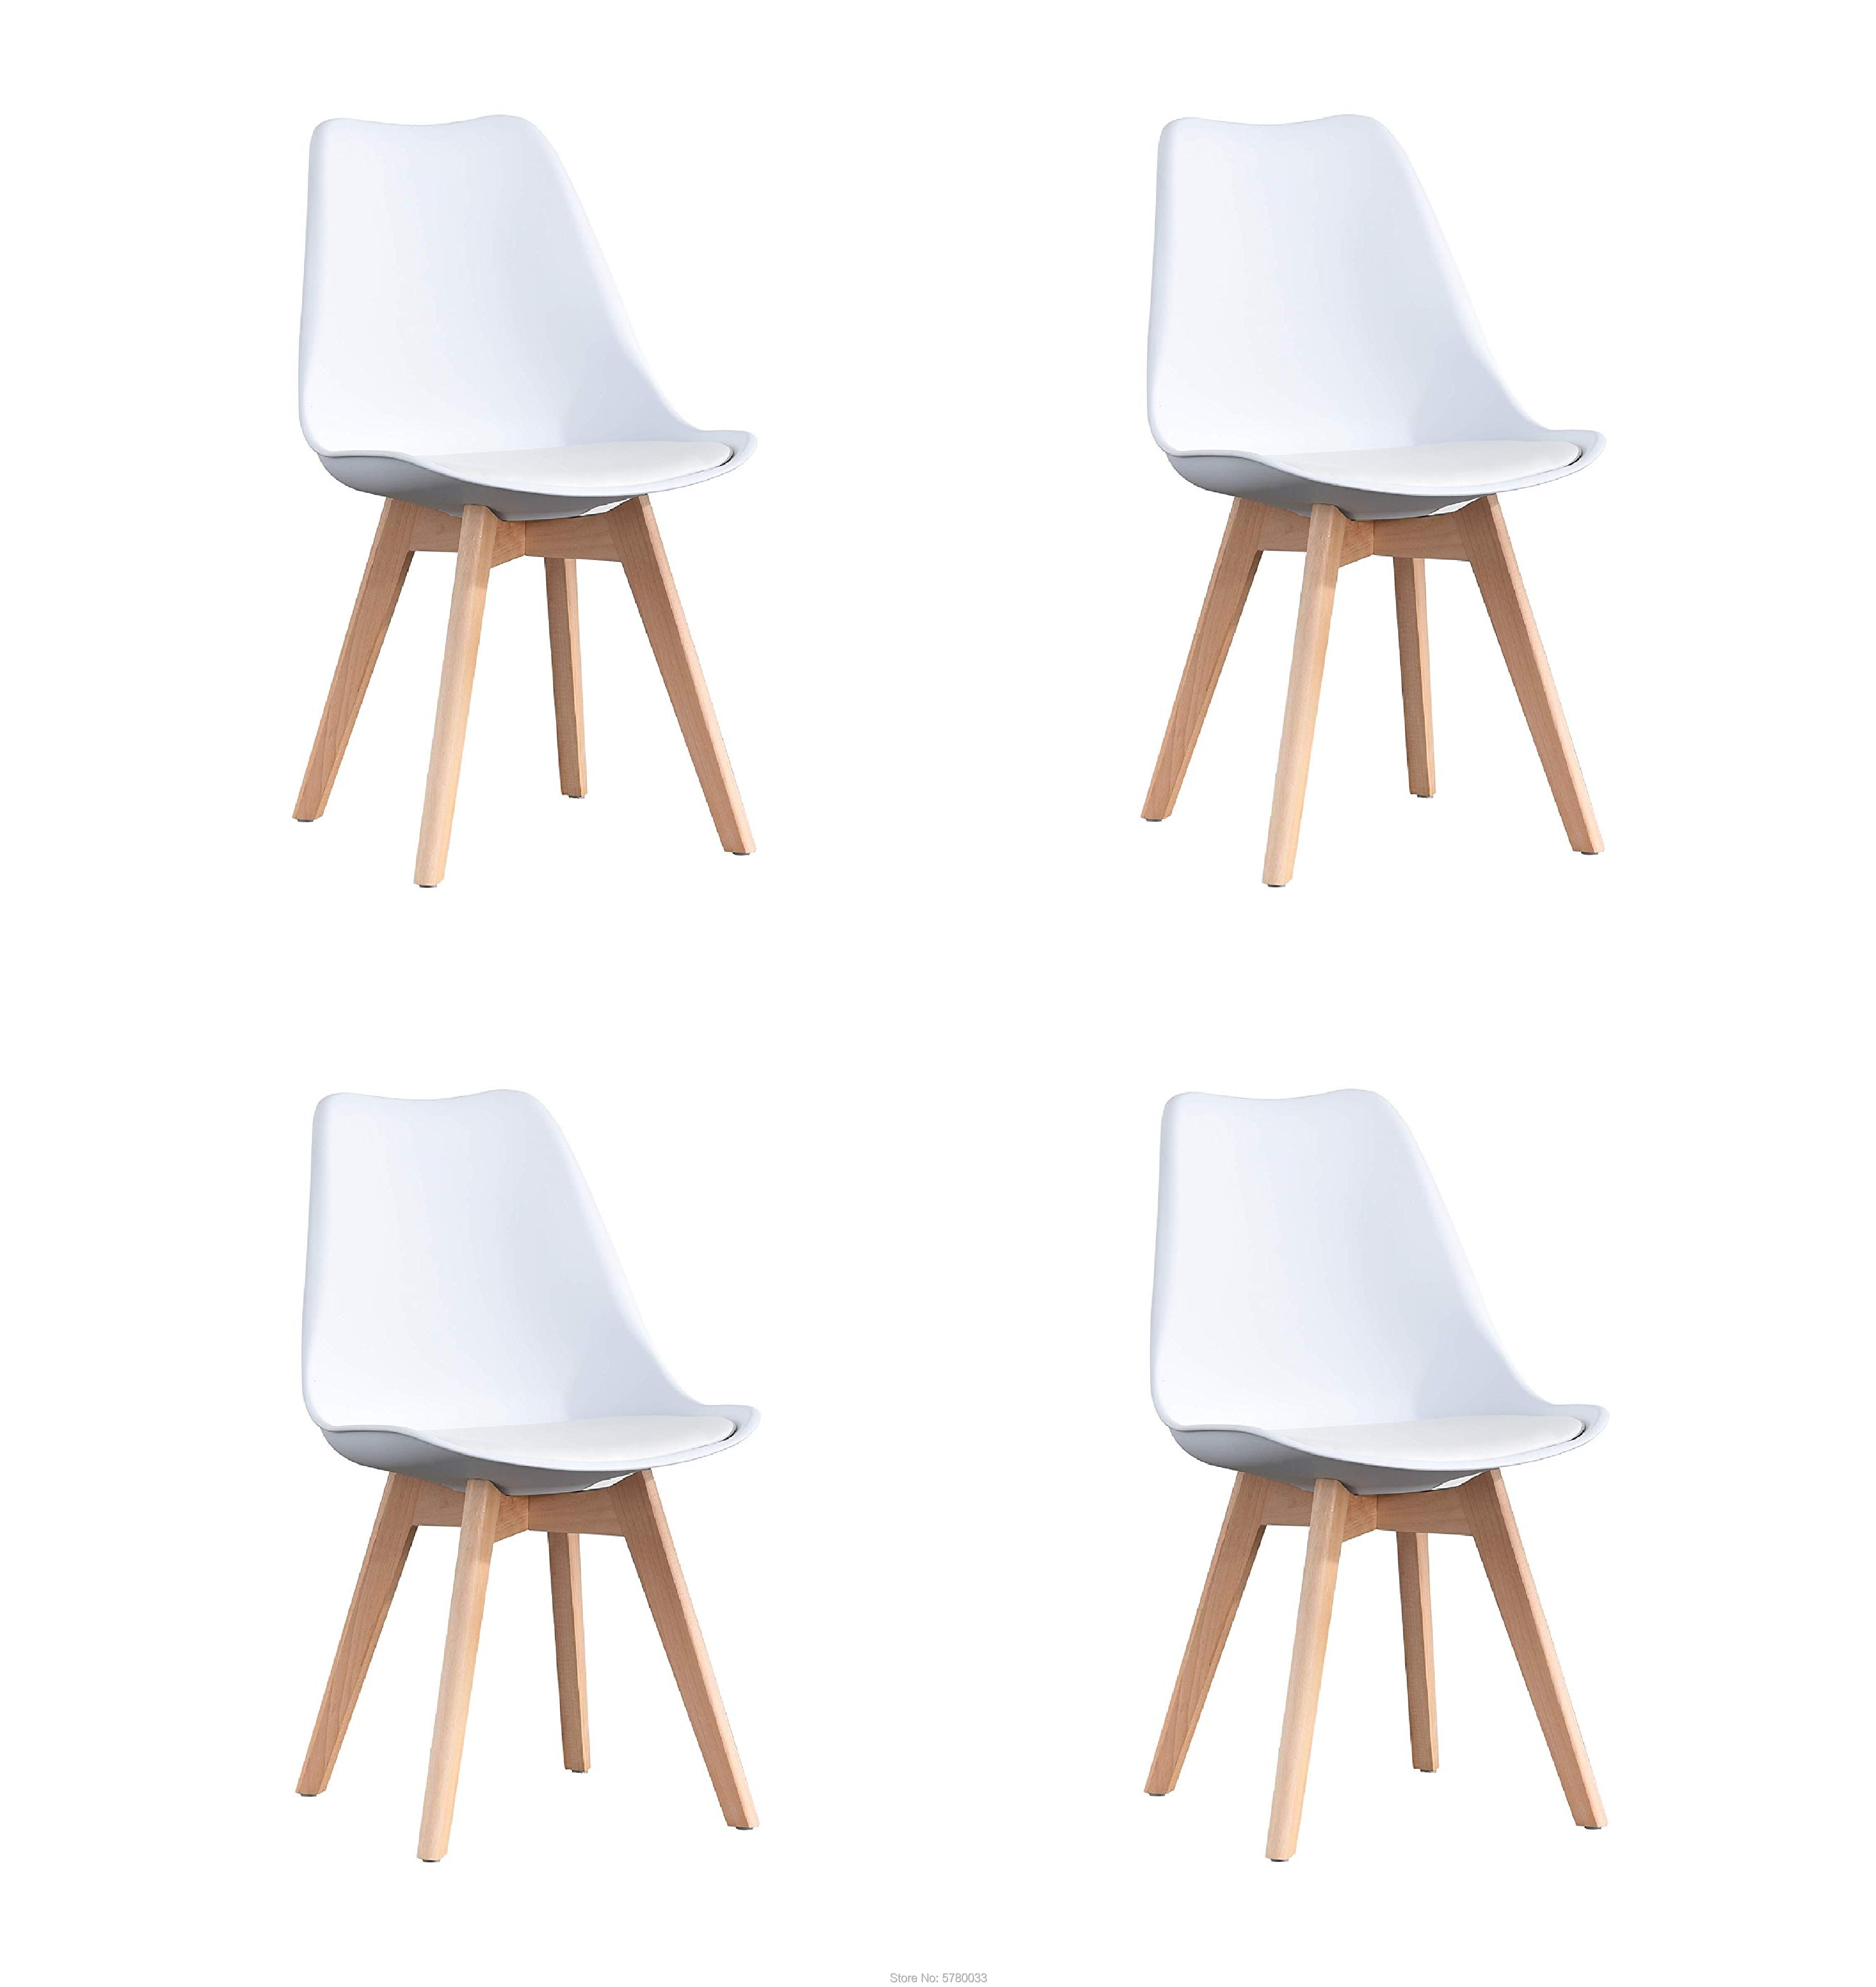 A Set Of Four Nordic Medieval Retro Style Dining Chairs, Solid Wood Feet, Beech Wood, Suitable For Kitchen, Dinings Room